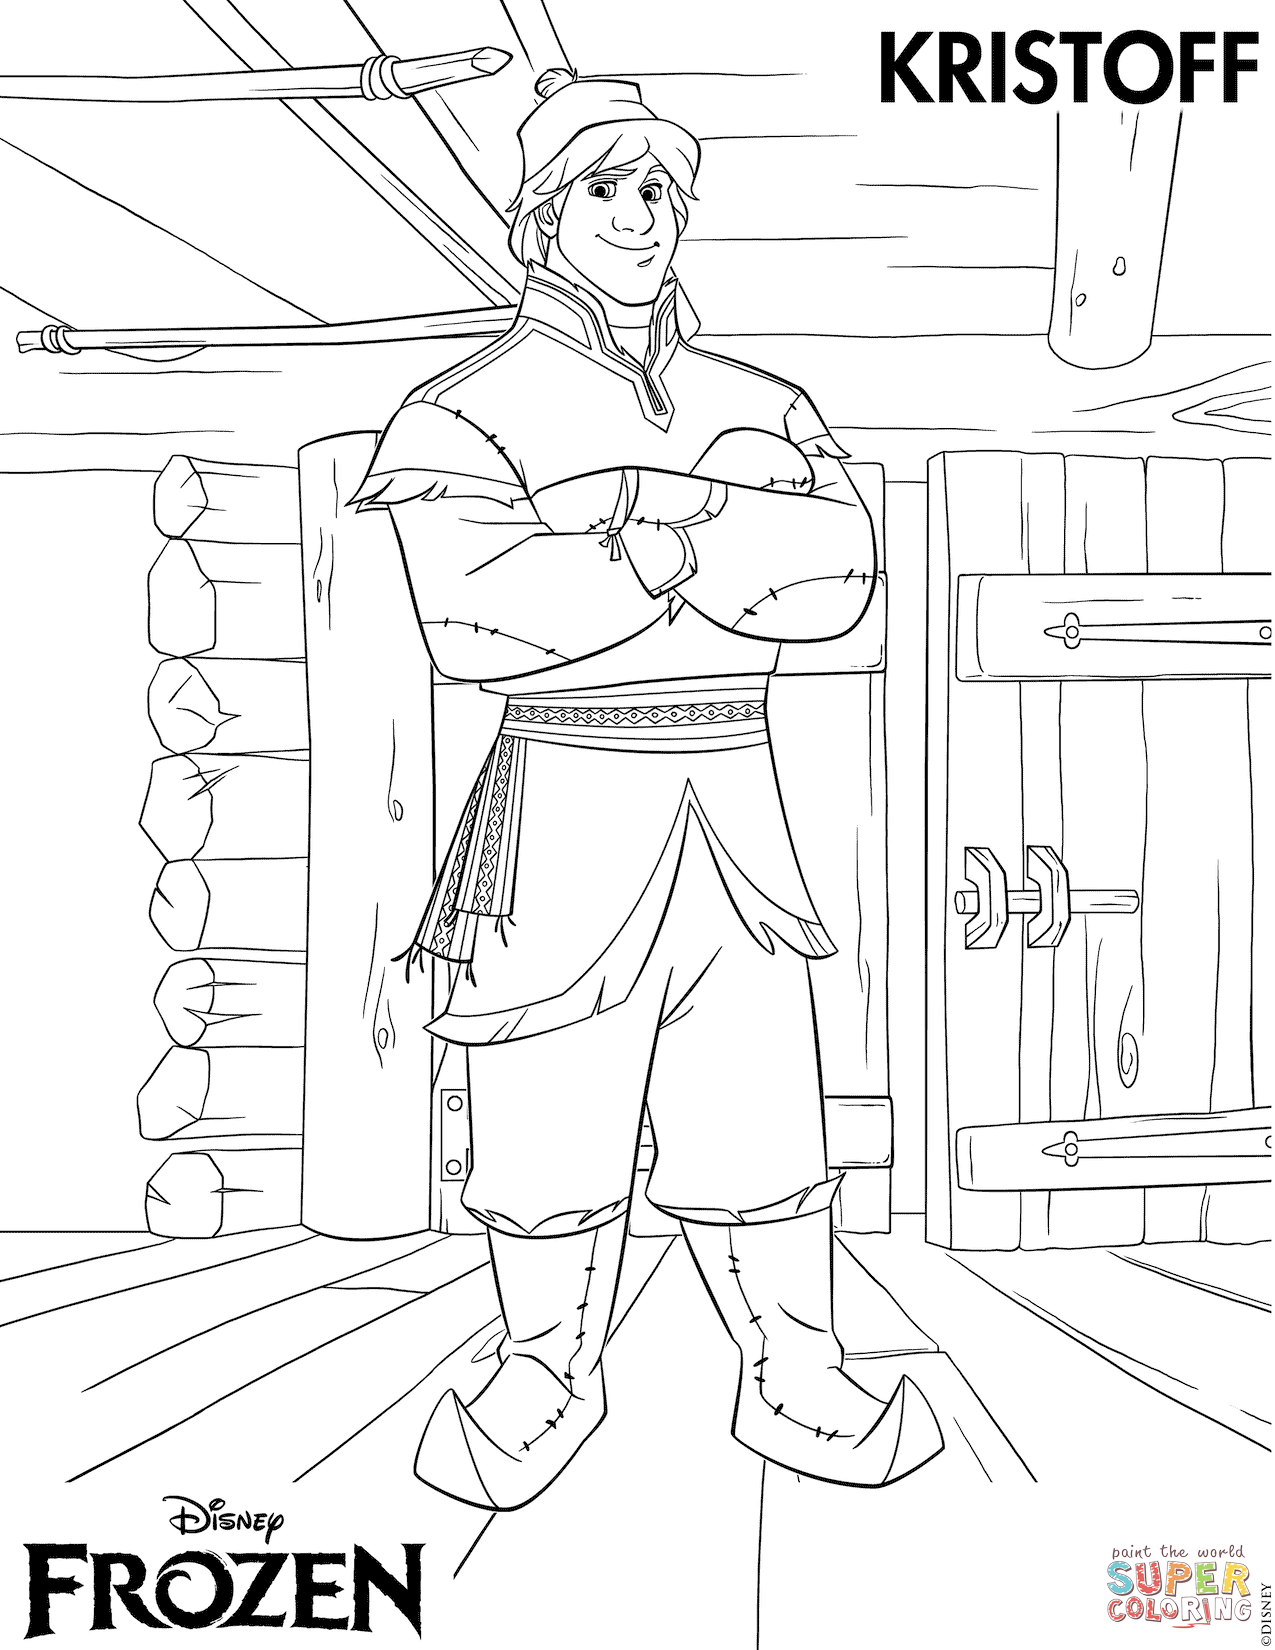 Kristoff From Frozen Coloring Page Free Printable Pages